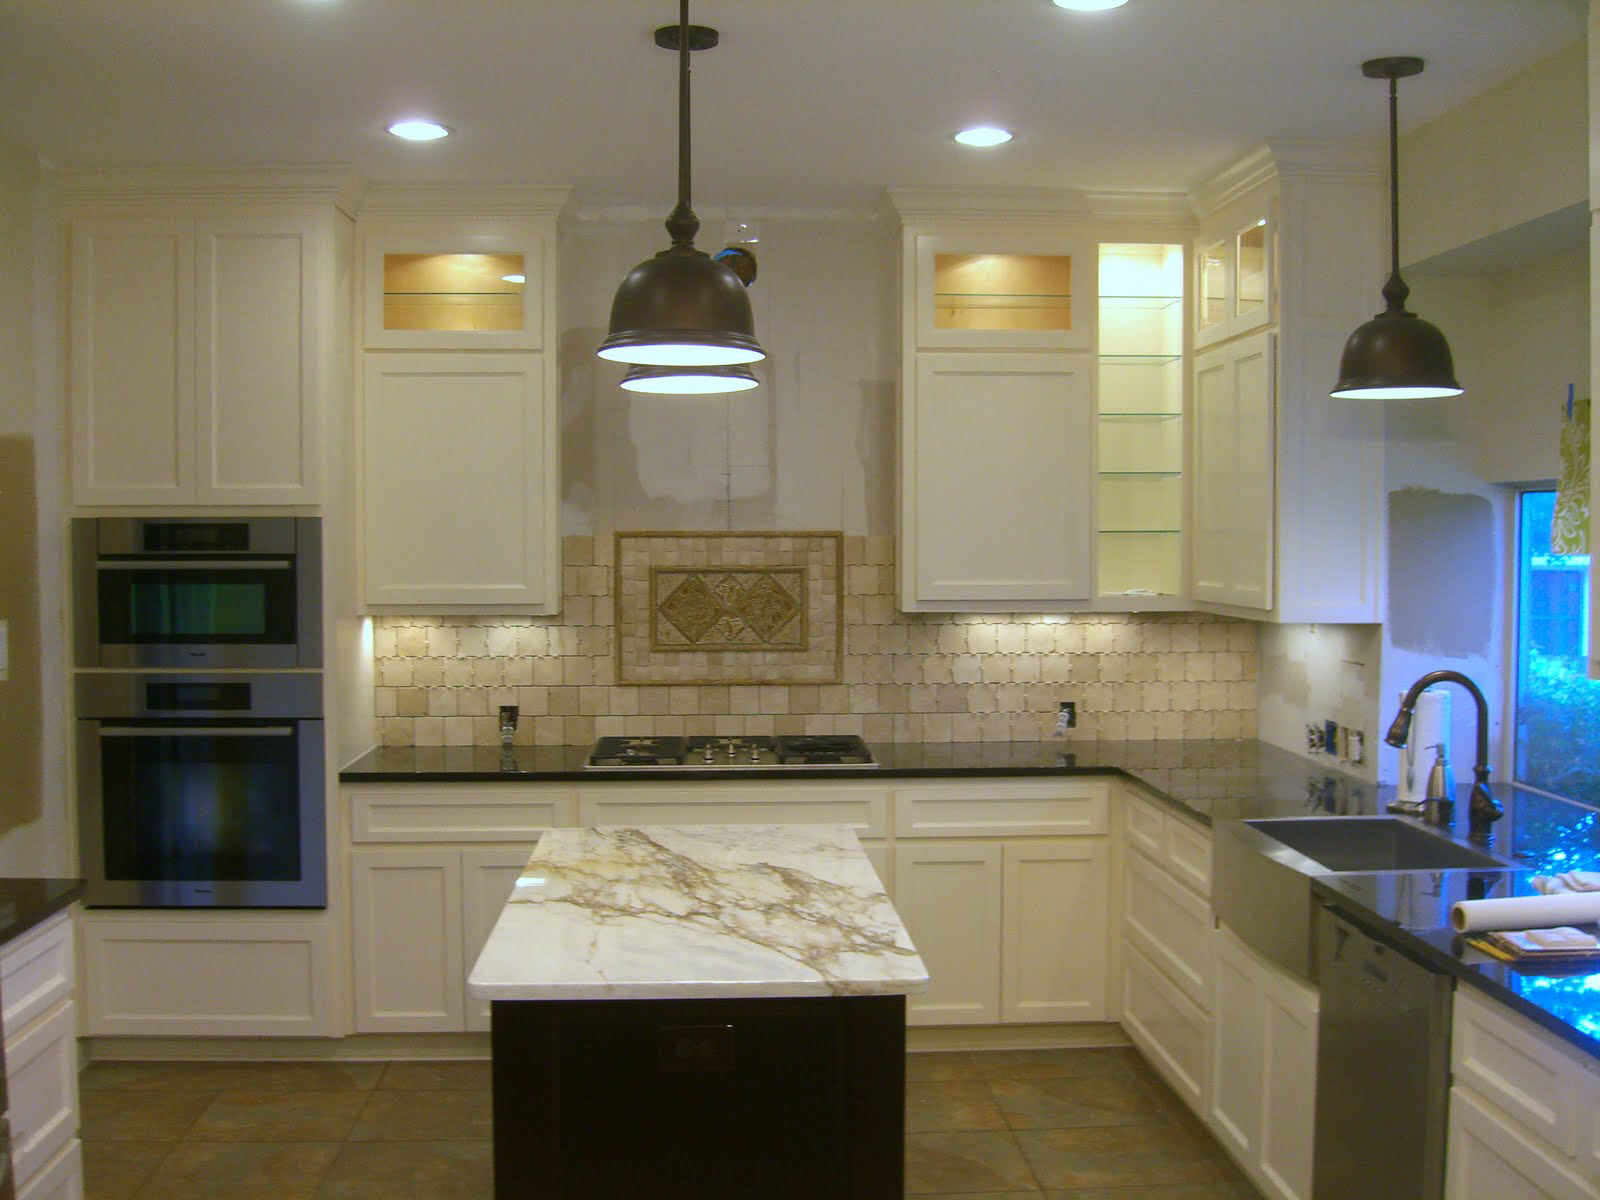 Good Kitchen Remodeling El Paso Tx #3: Homemakeovers Remodeling Specialists